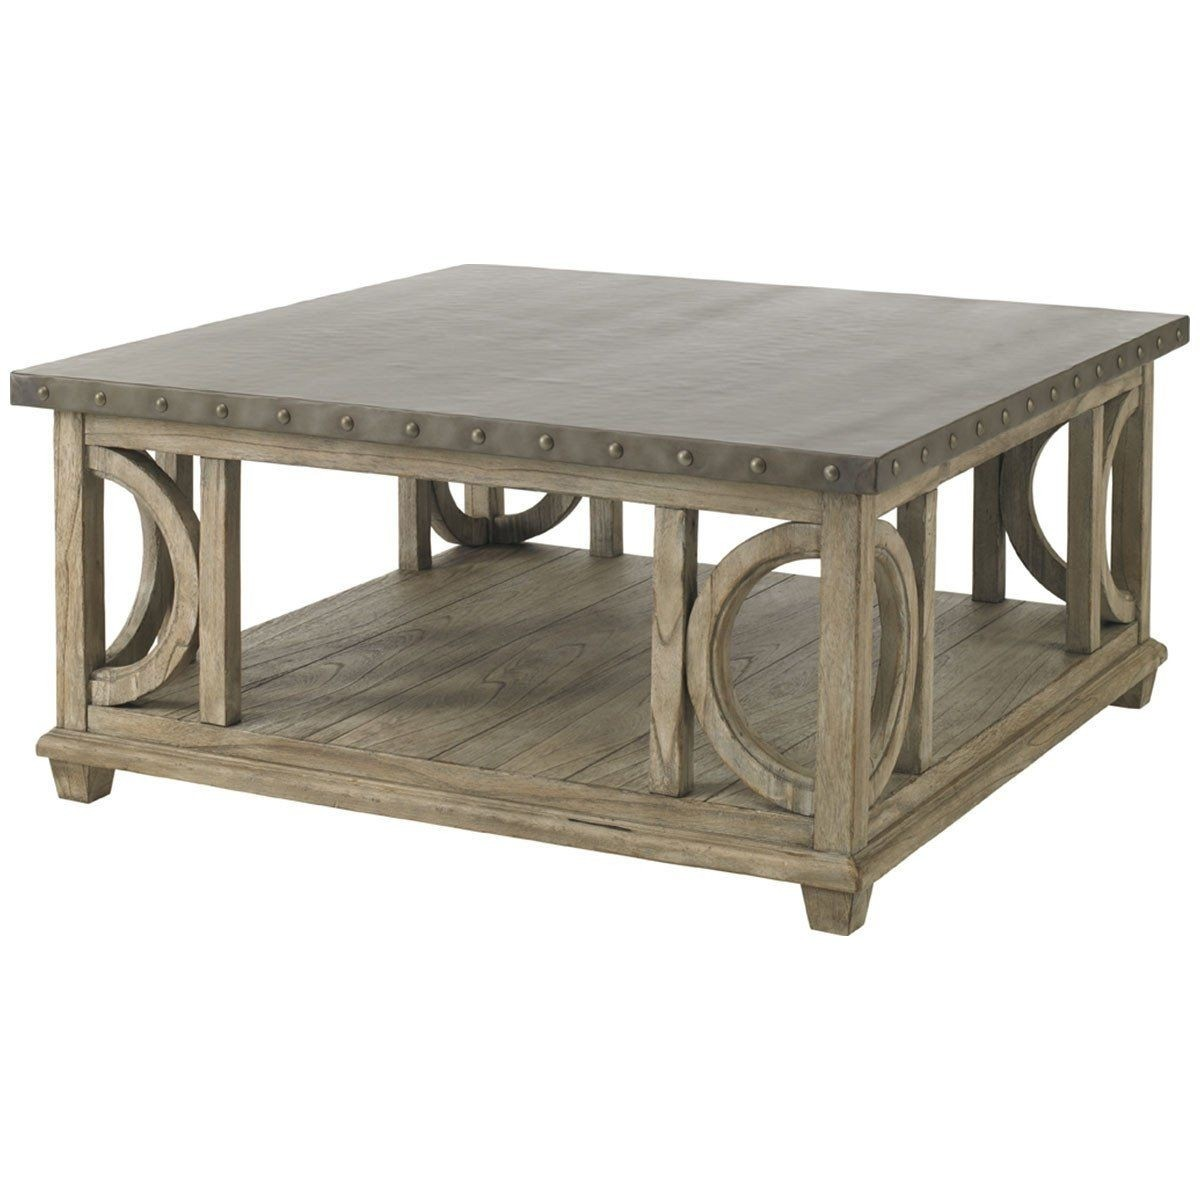 Large Square Coffee Table Wyatt 40 Square Cocktail Table Gray